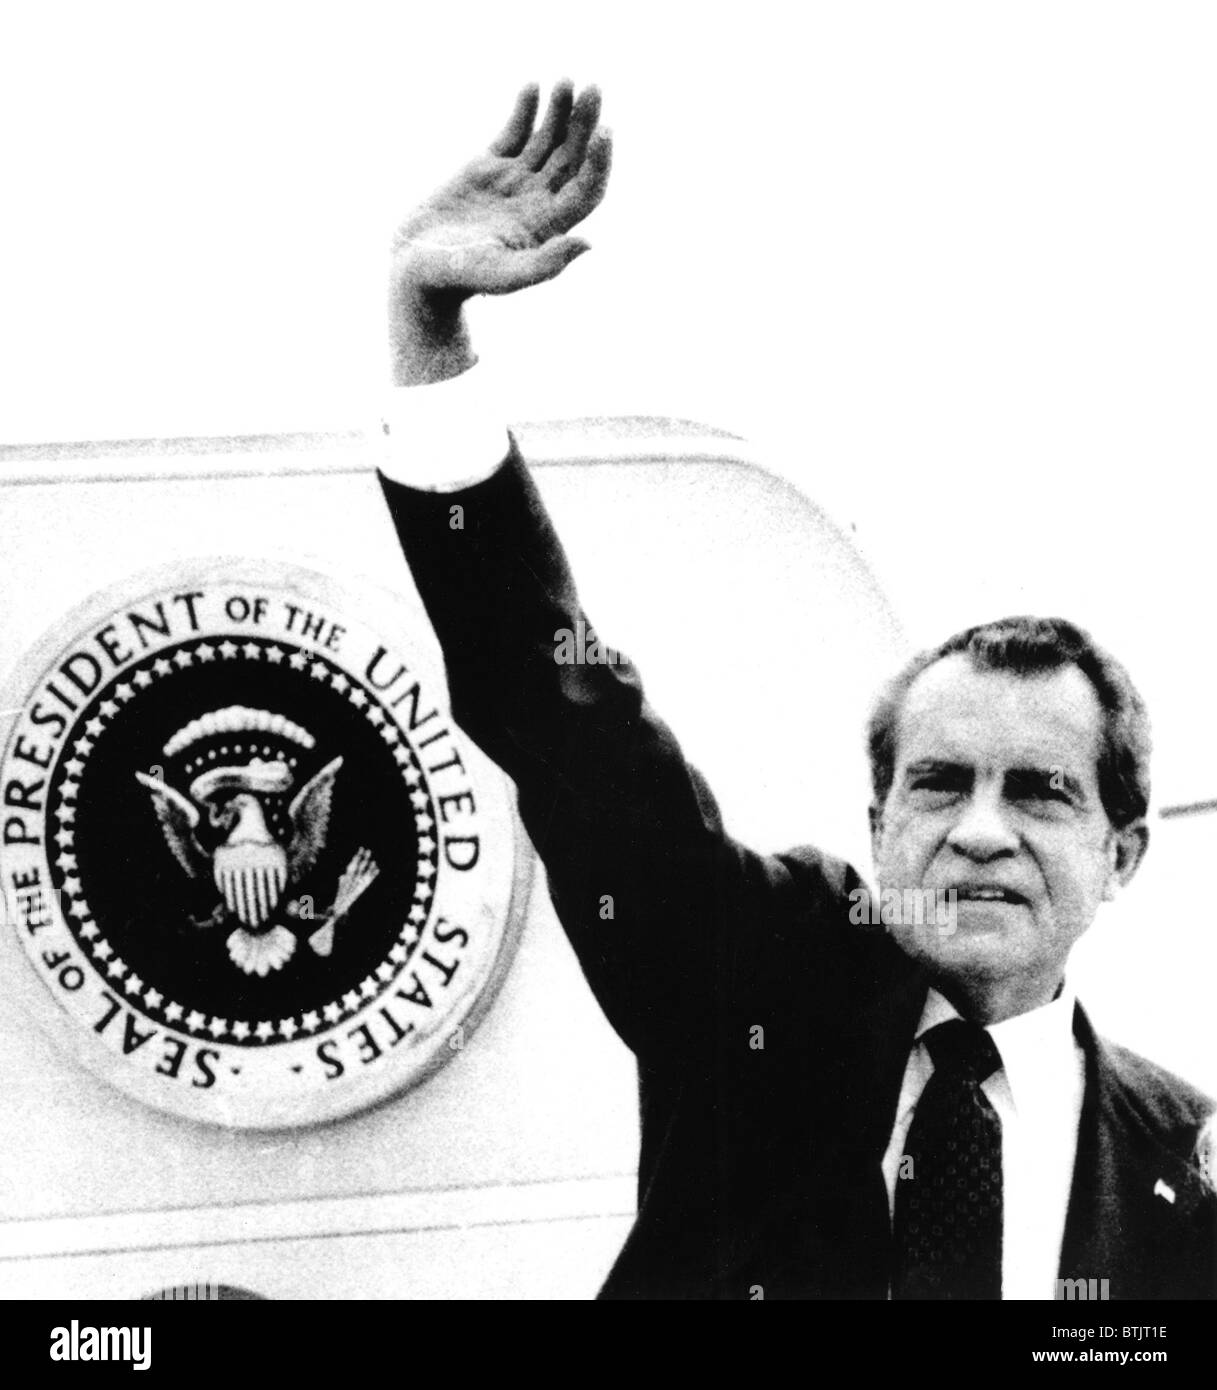 The Presidential Seal behind him for the last time, Richard M. Nixon boards Air Force One for California after resigning, - Stock Image